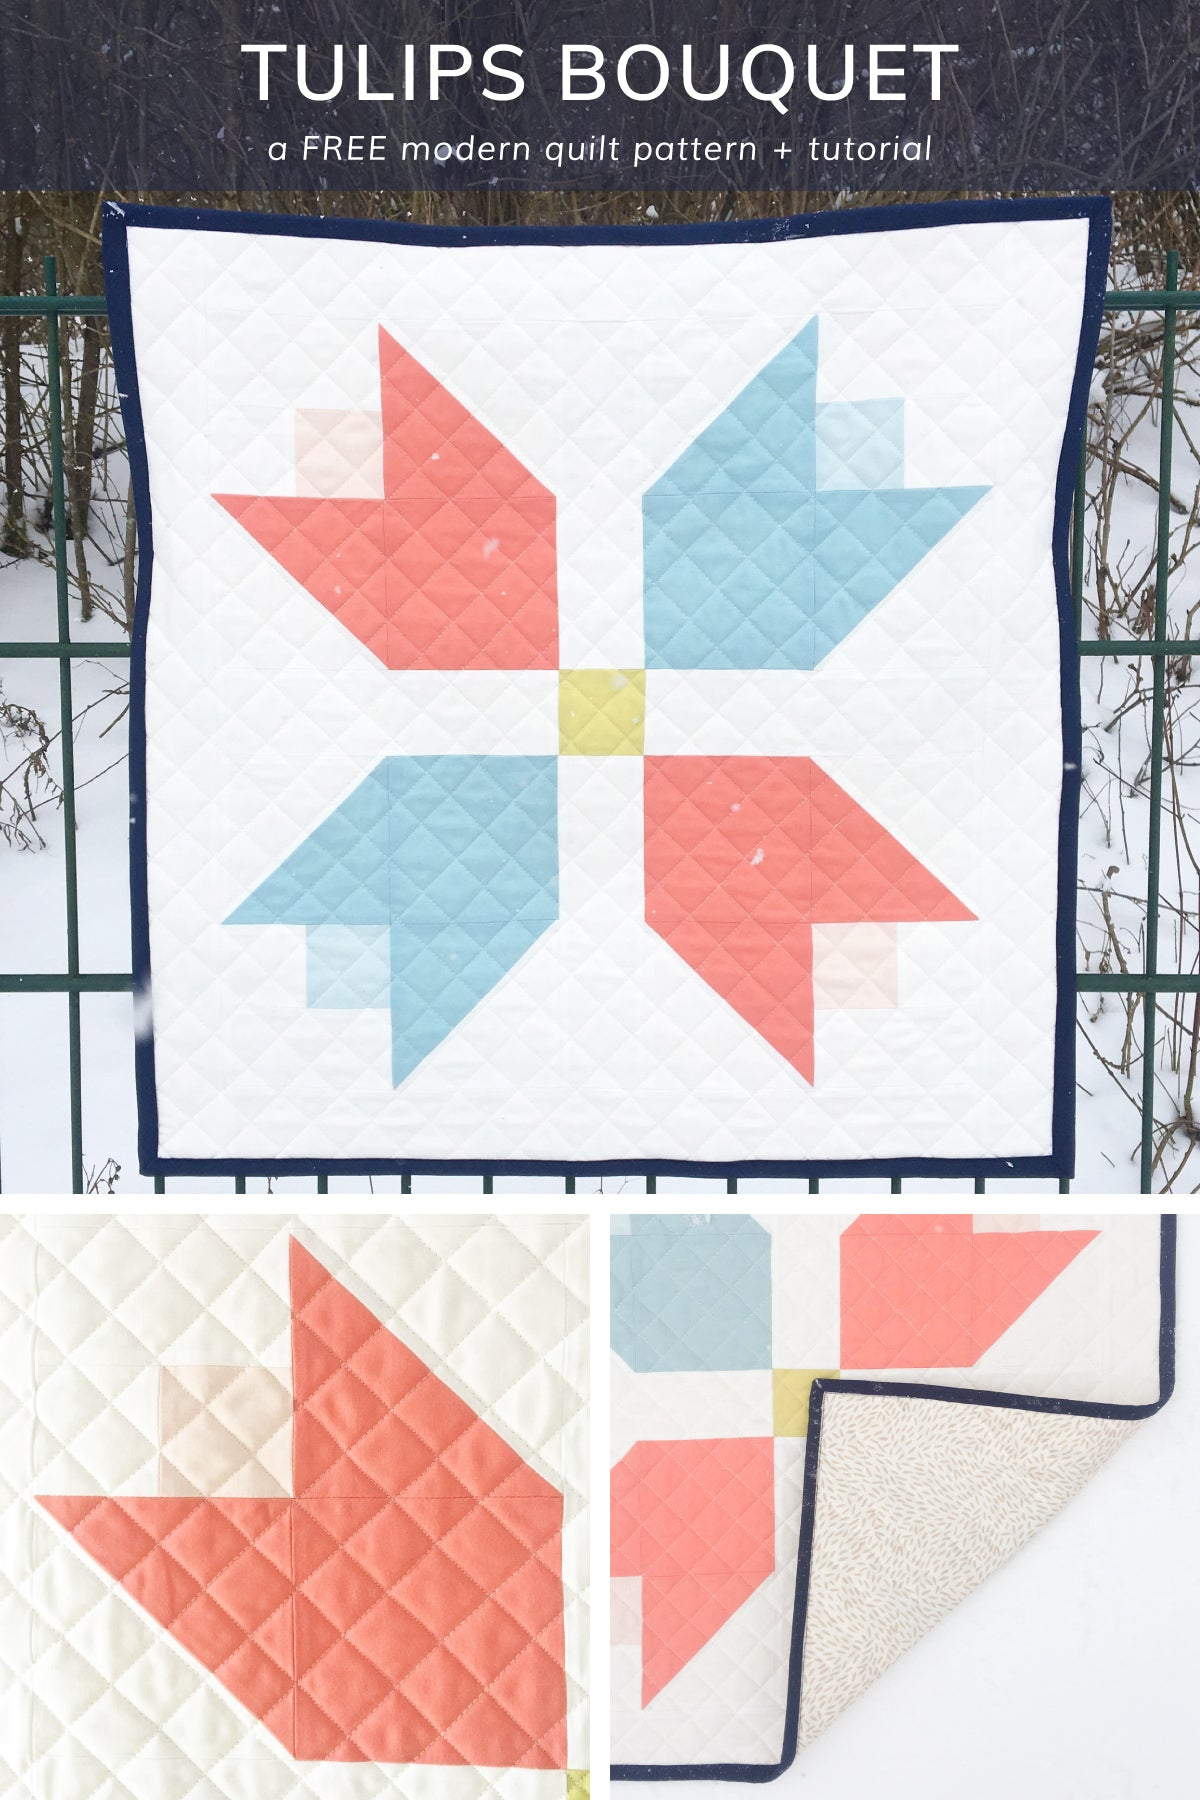 Visit Cotton + Joy for a free pattern and tutorial on the tulips quilt block. Oversized for a spring quilted wall hanging